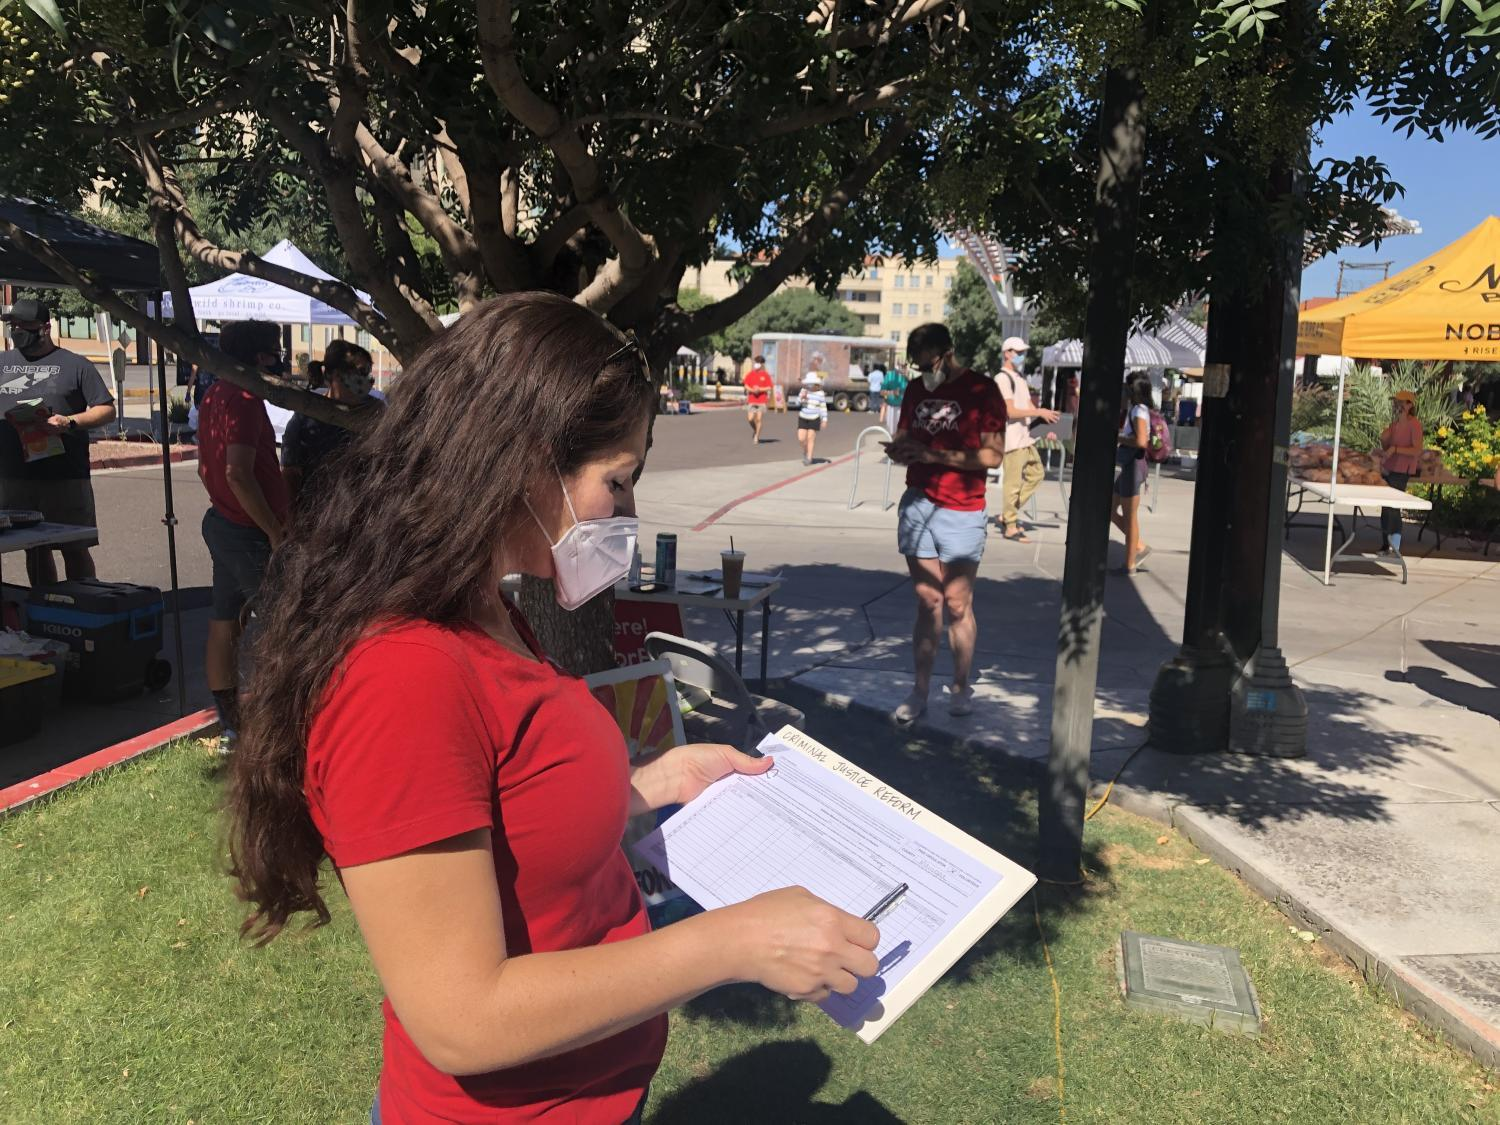 Dawn Penich-Thacker collects signatures for a ballot initiative ahead of the 2020 election.